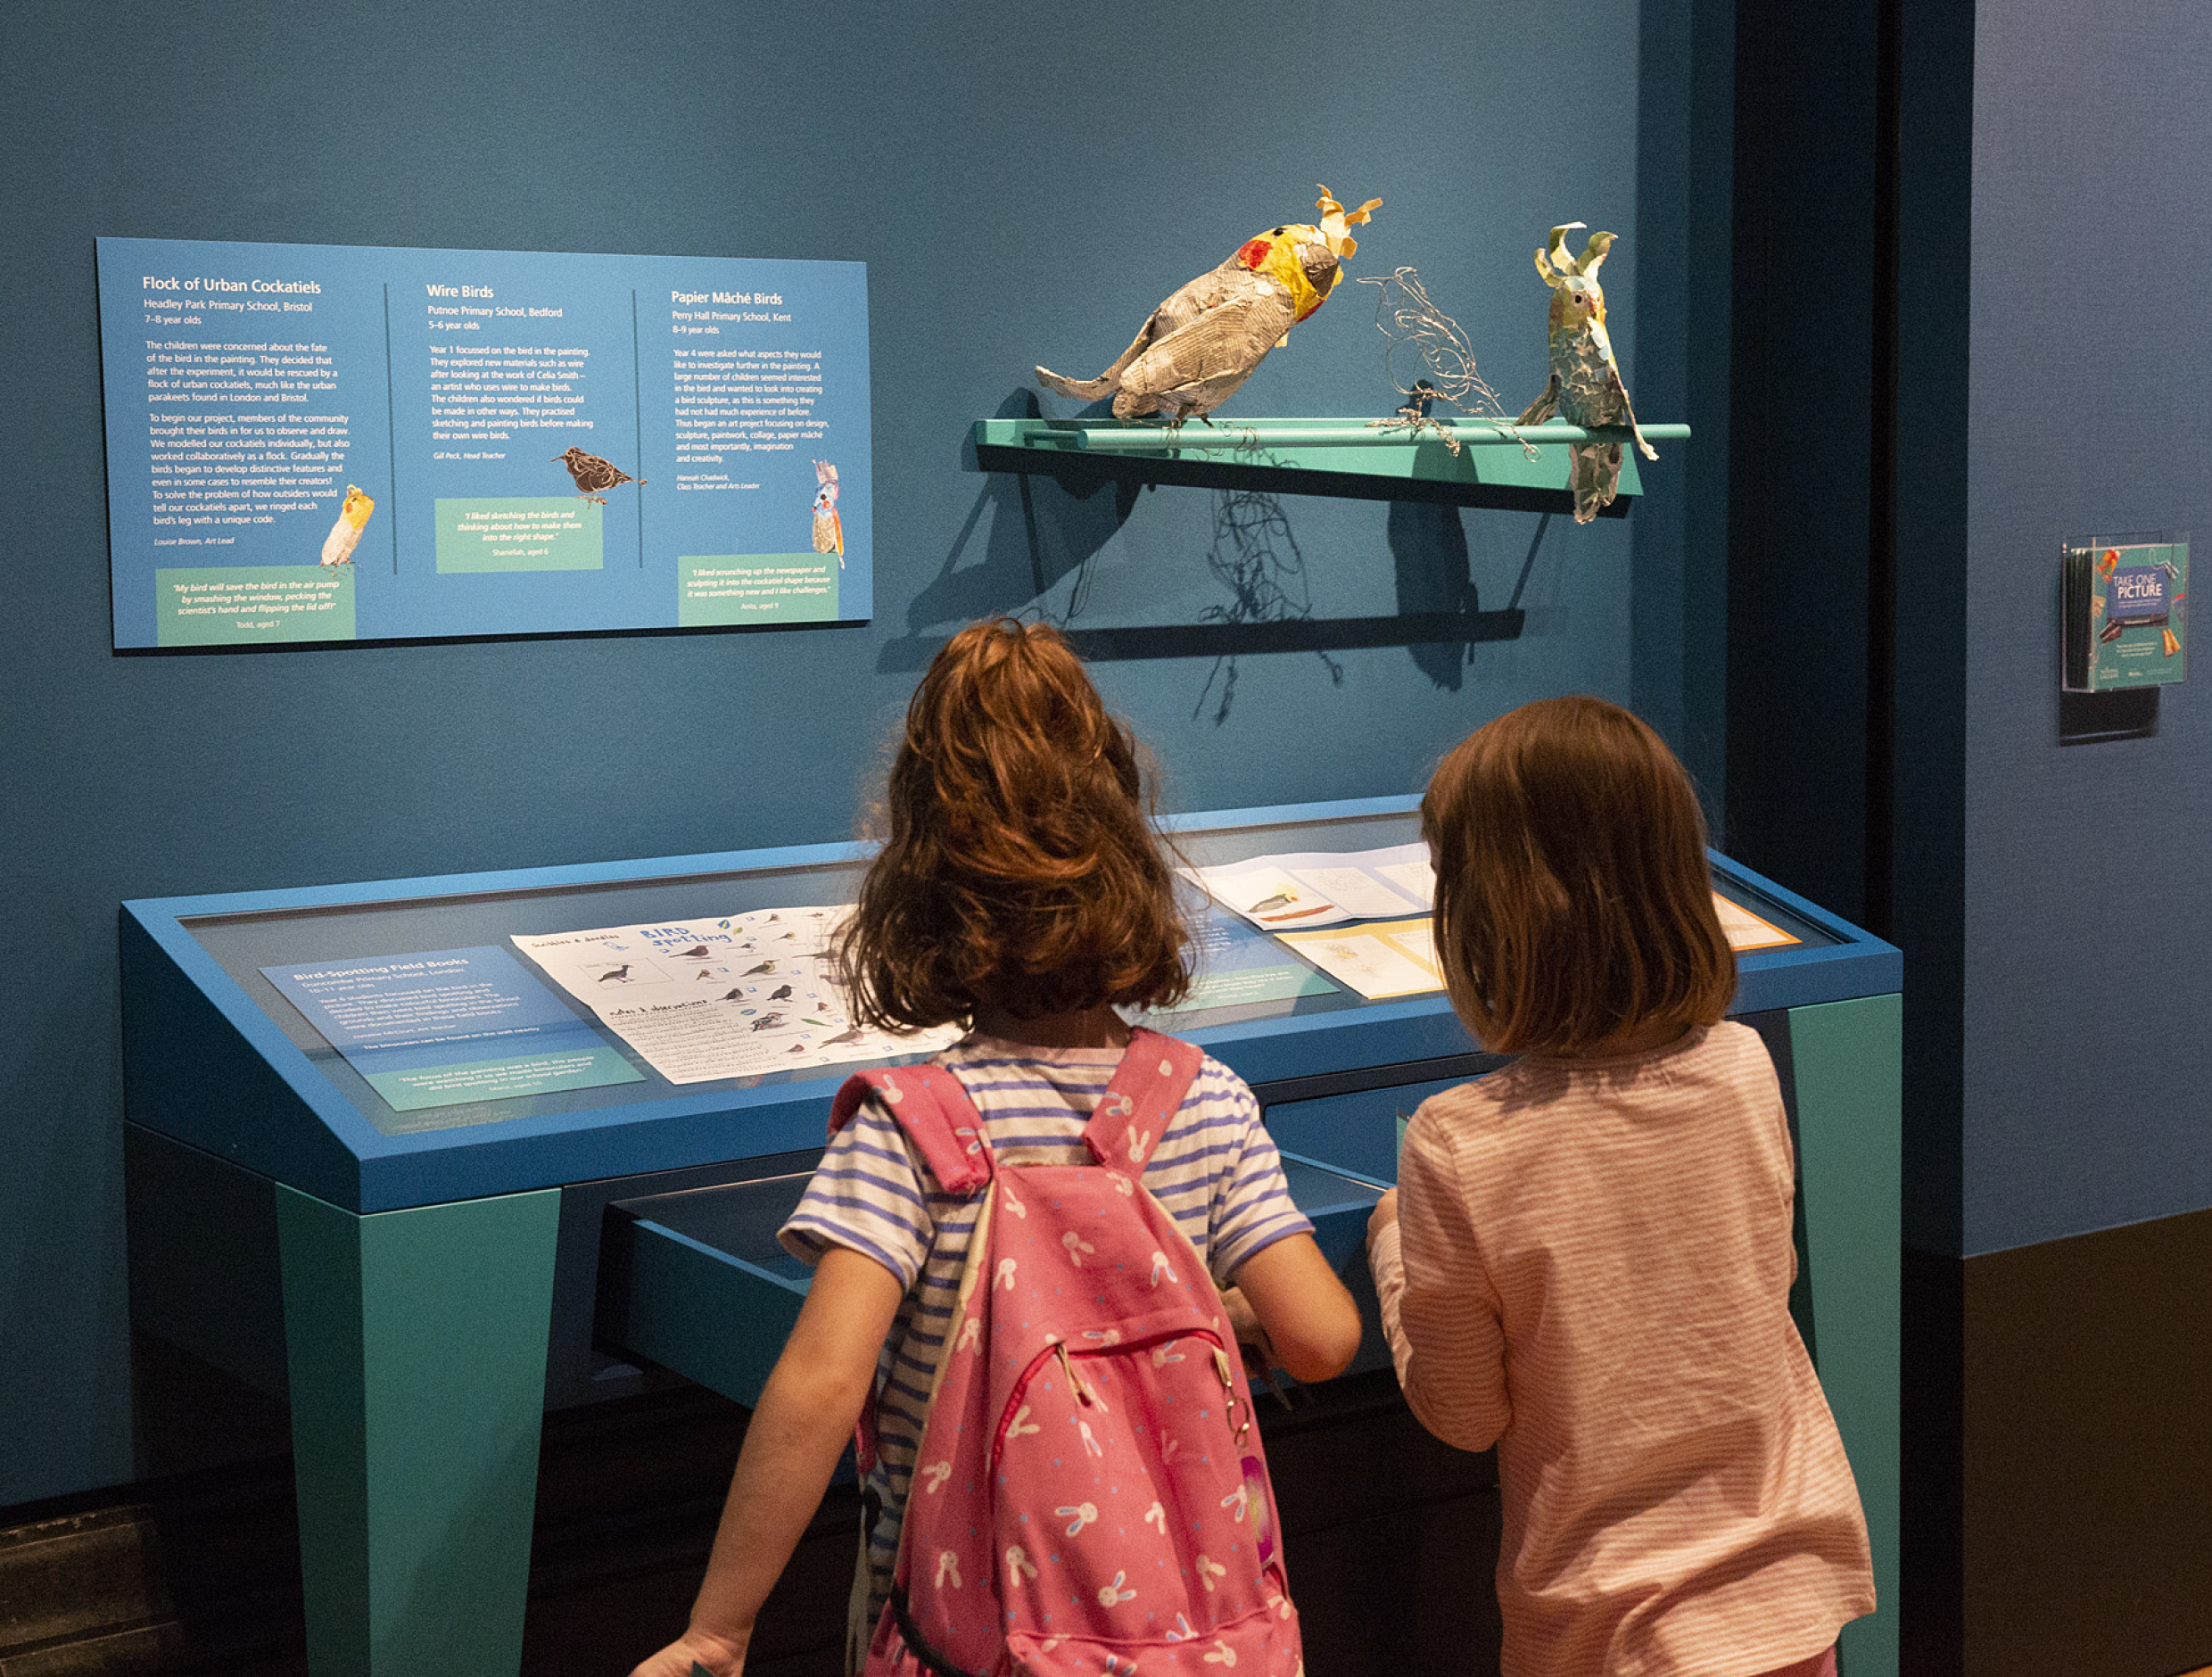 Two small children interacting with exhibition display on birds